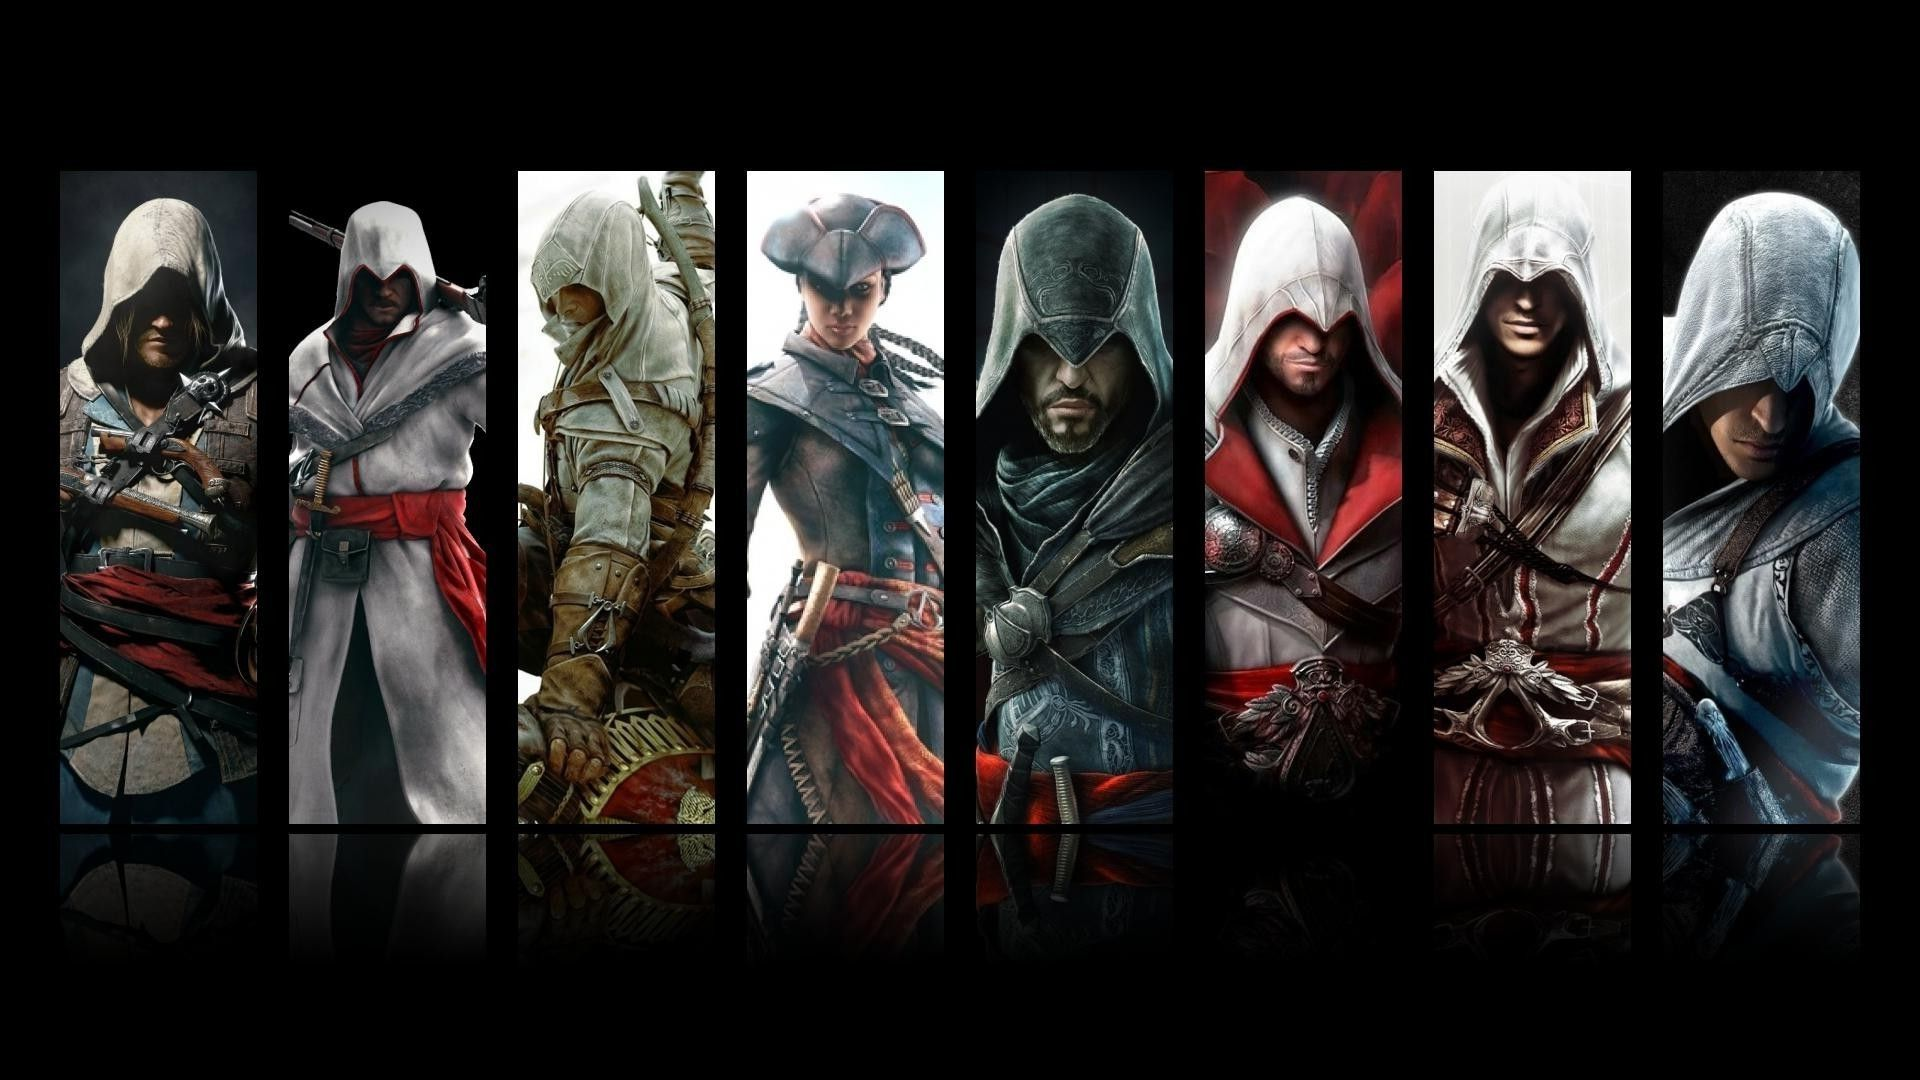 assassin's creed 3 4 of july